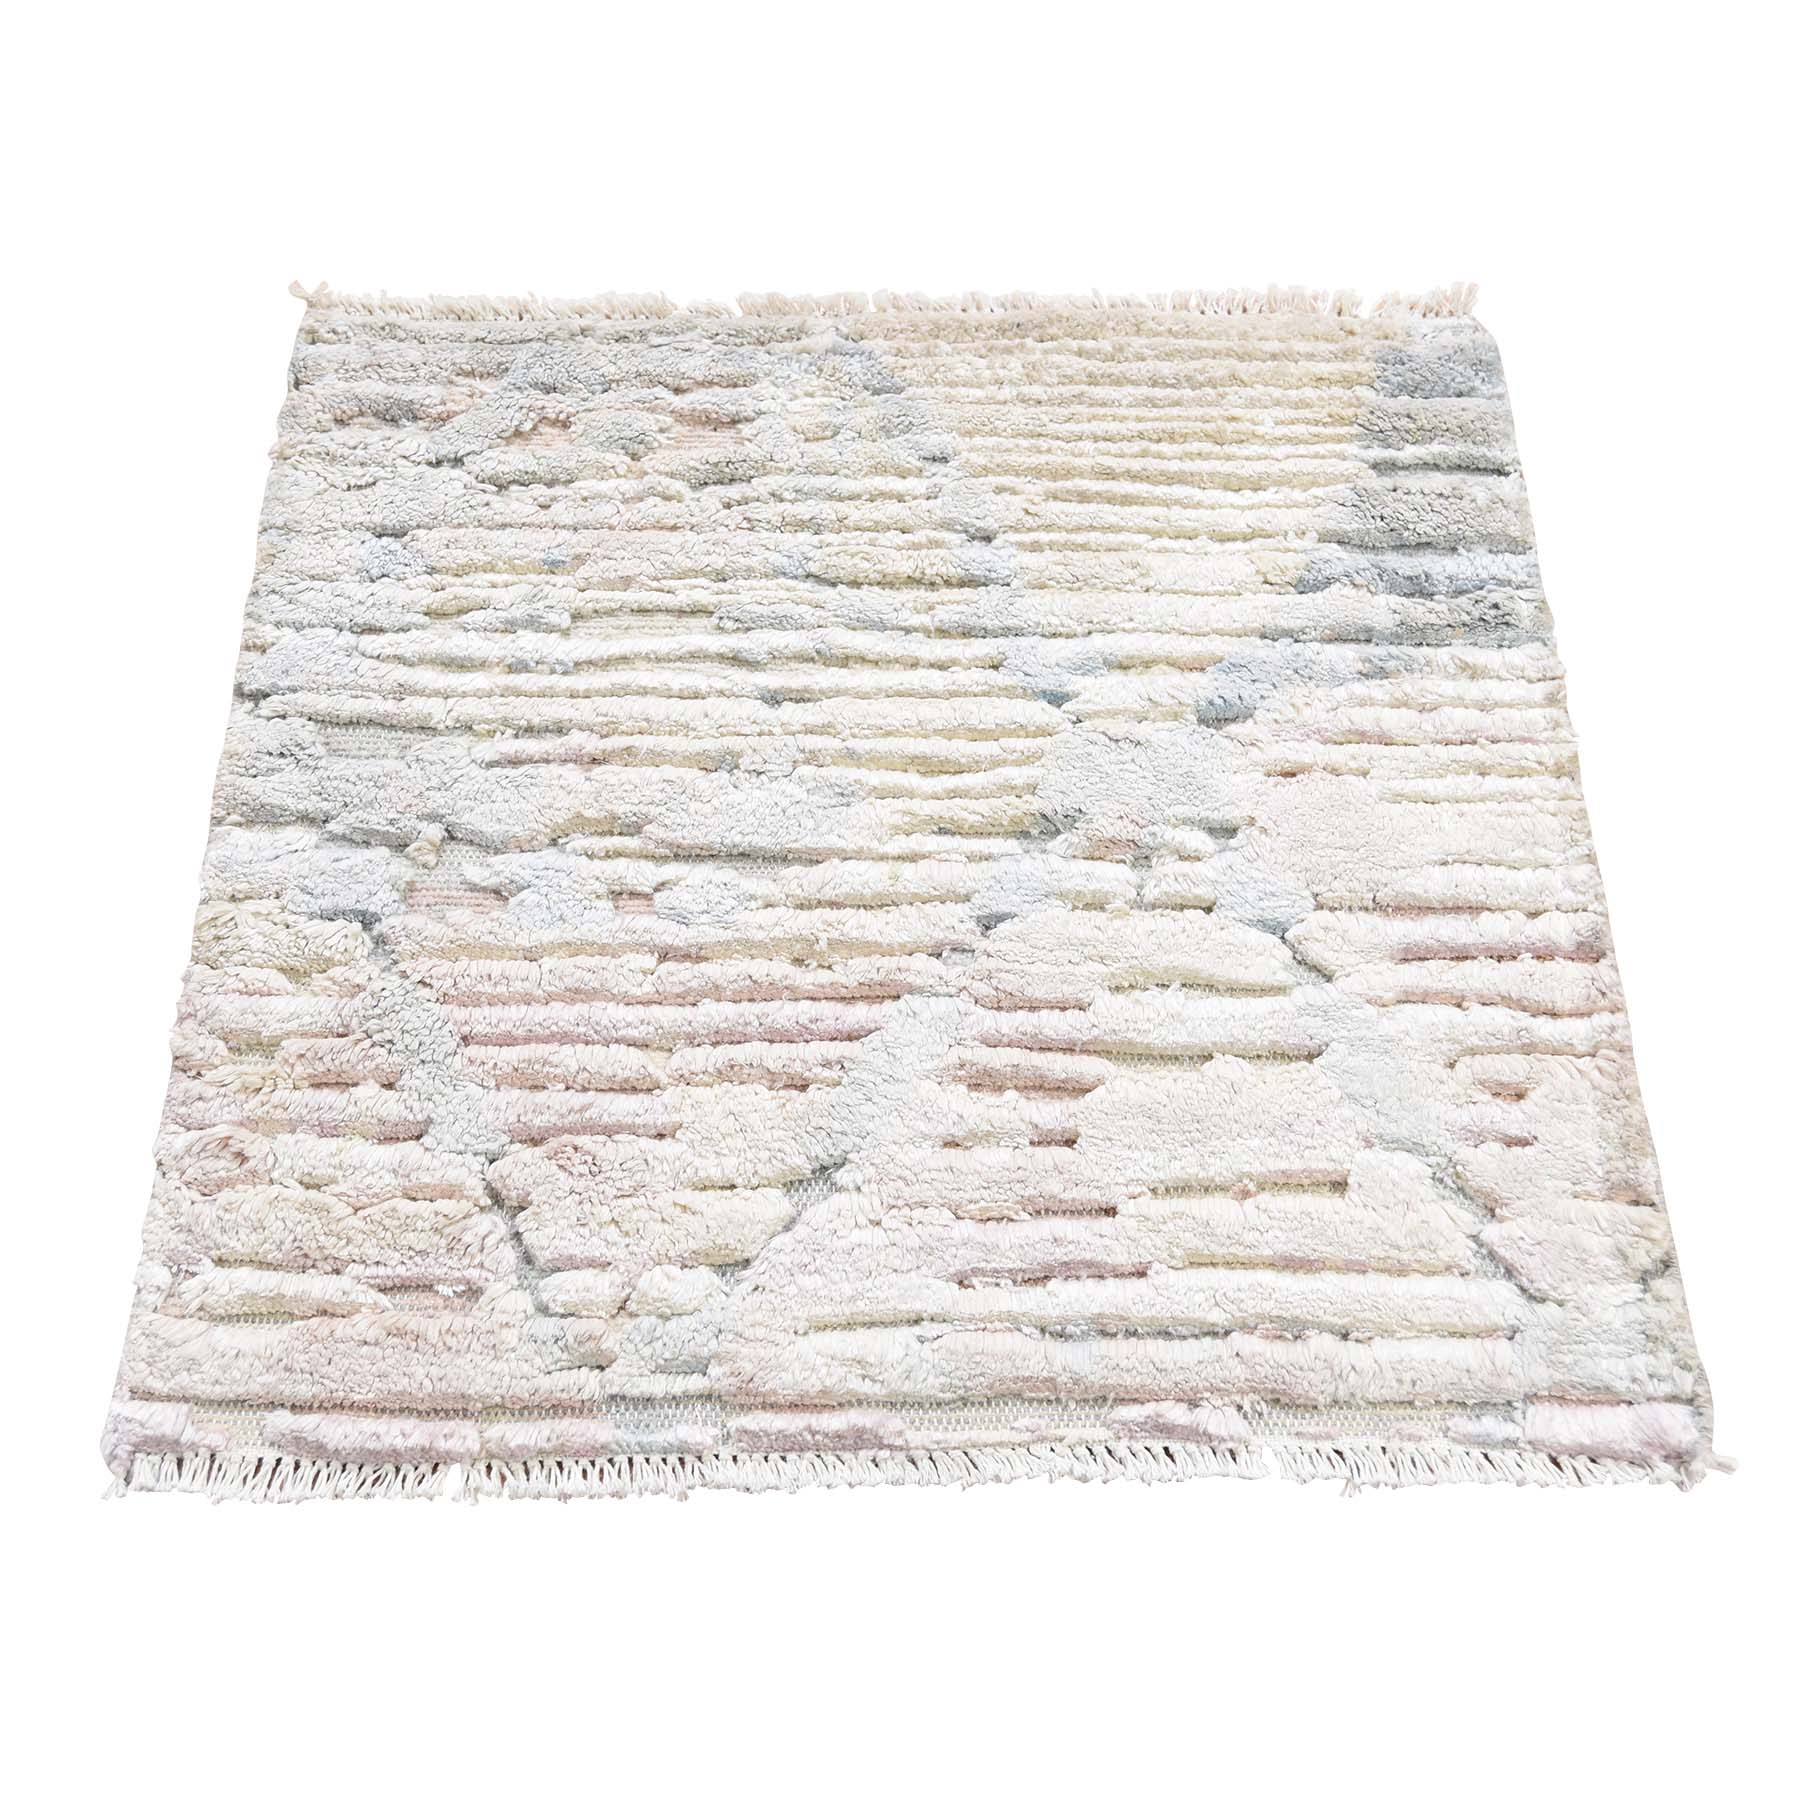 2'x2' Sampler luxurious Plush Pure Silk With Textured Wool Hand-Knotted Oriental Rug